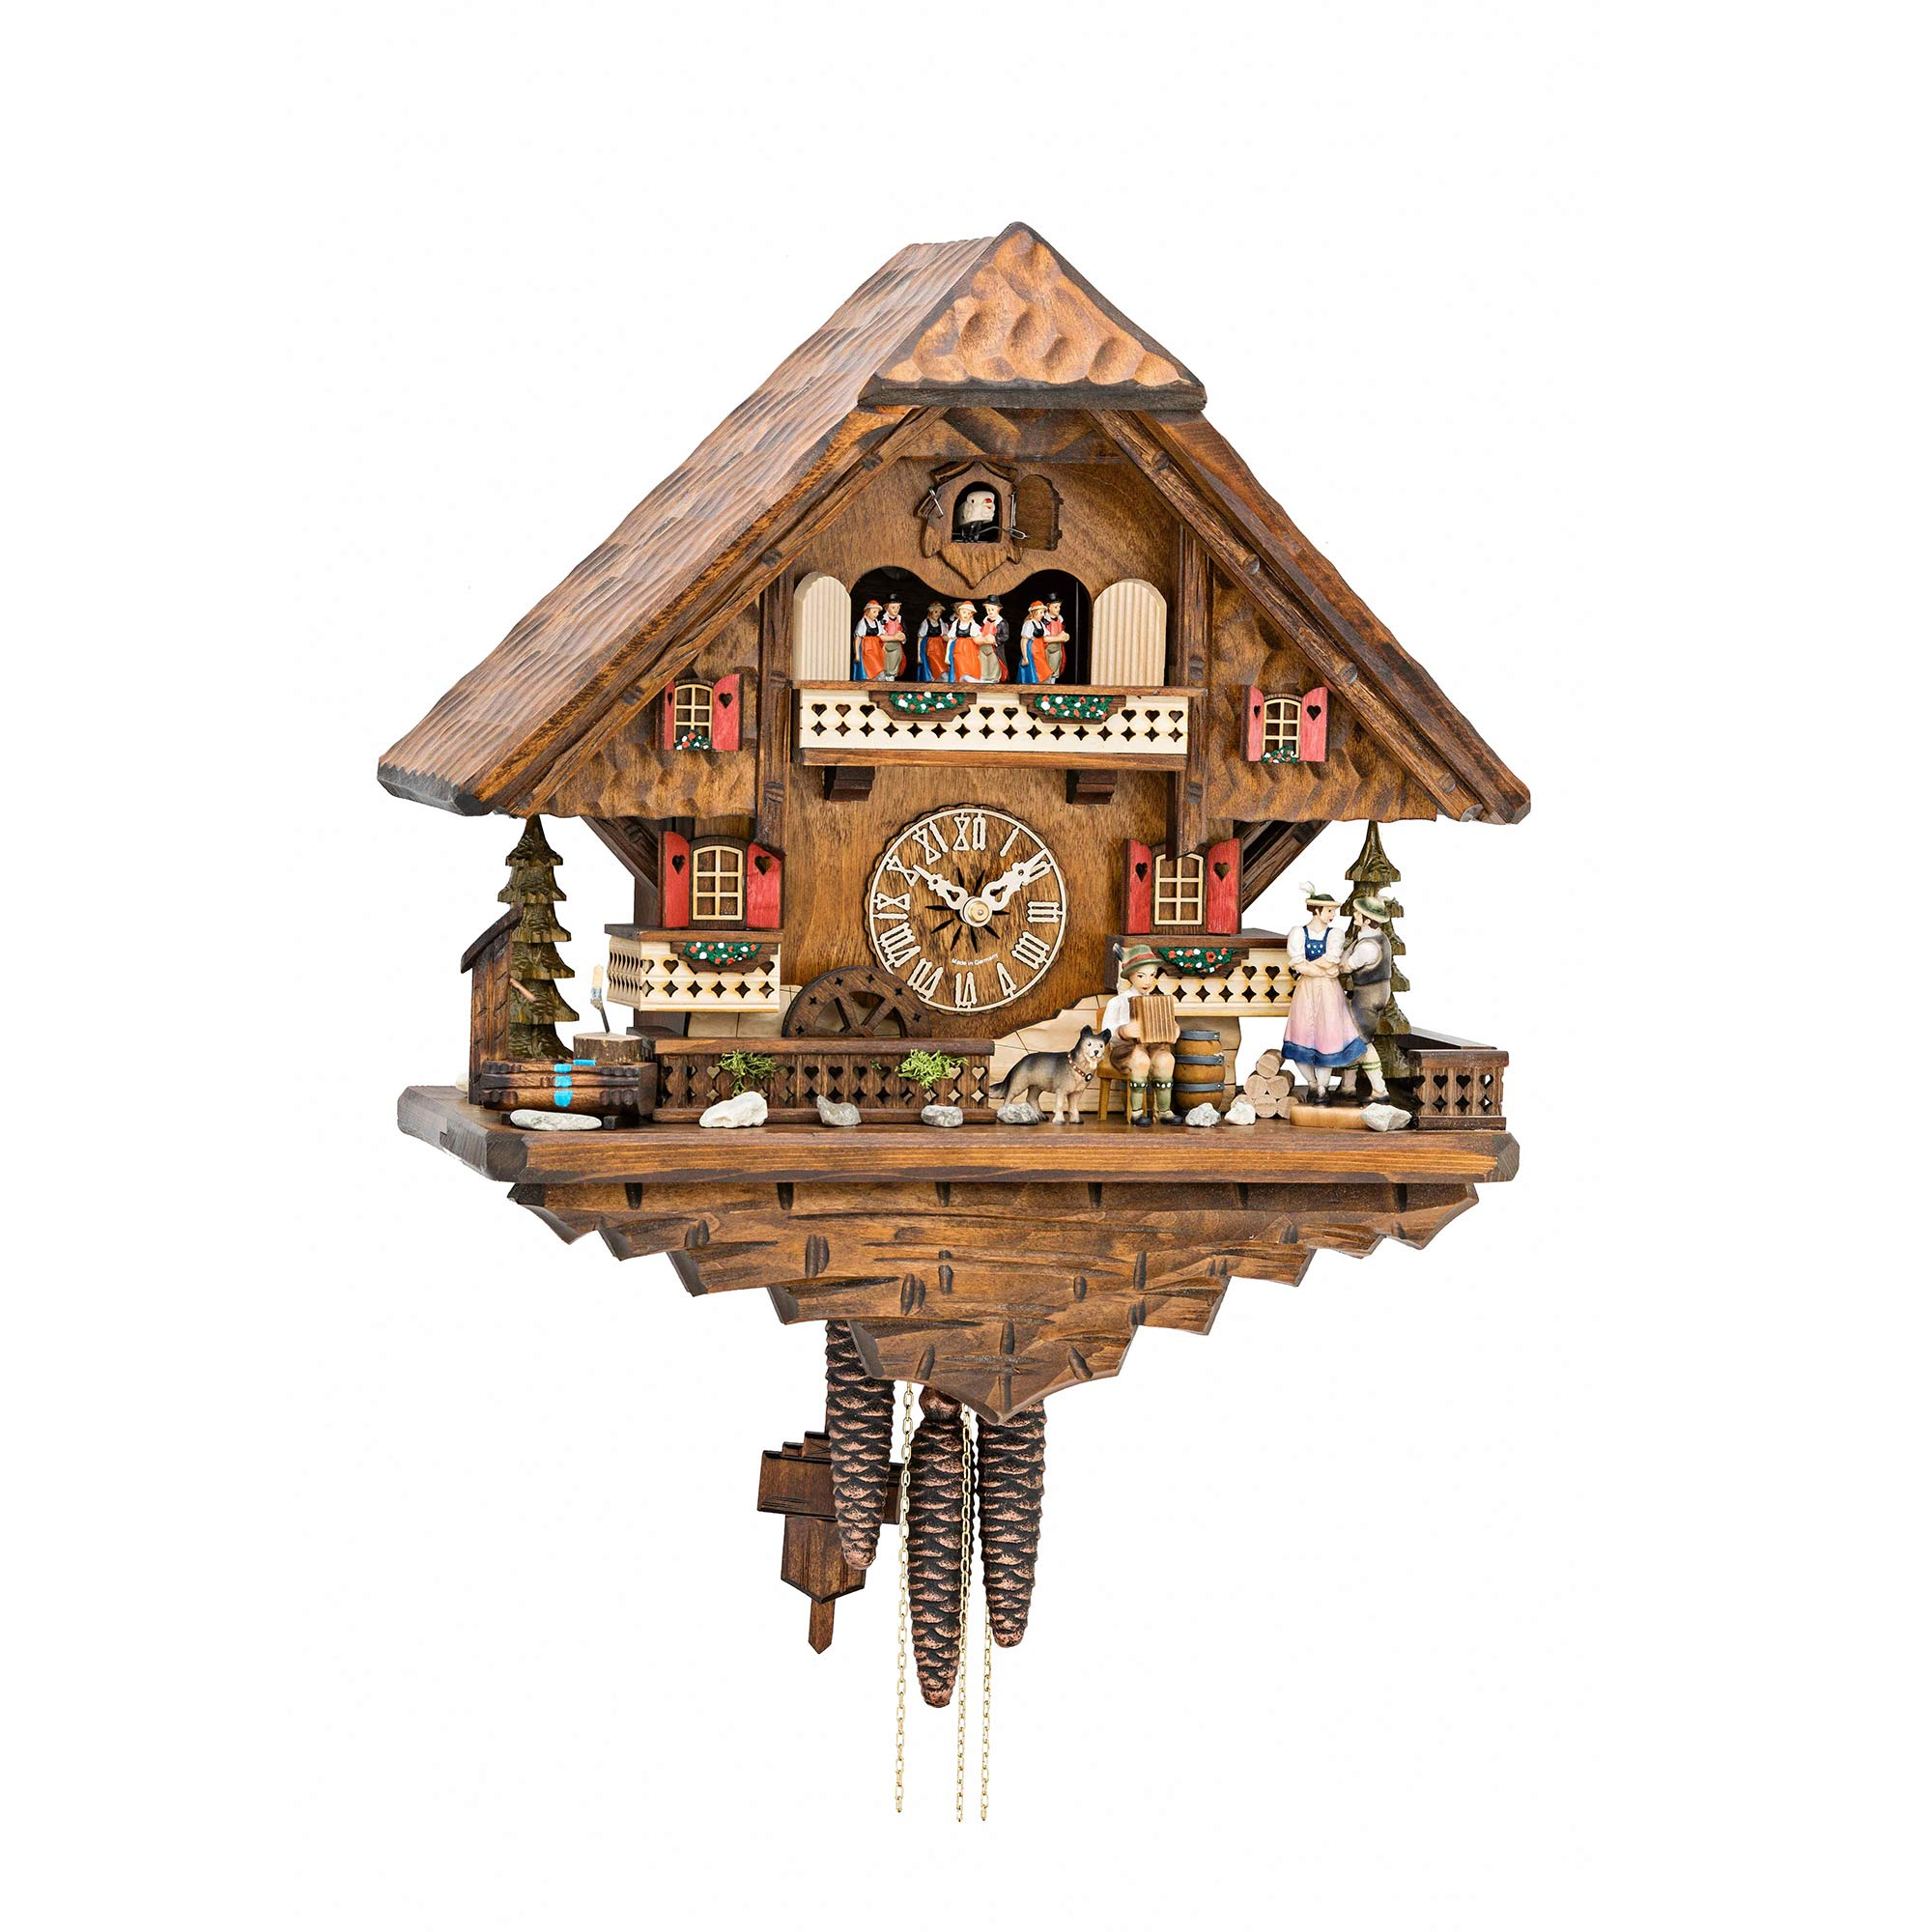 Chalet 1-day musical cuckoo clock Black Forest lovers, accordion player,  dog, mill-wheel, and dancers 42cm by Hekas